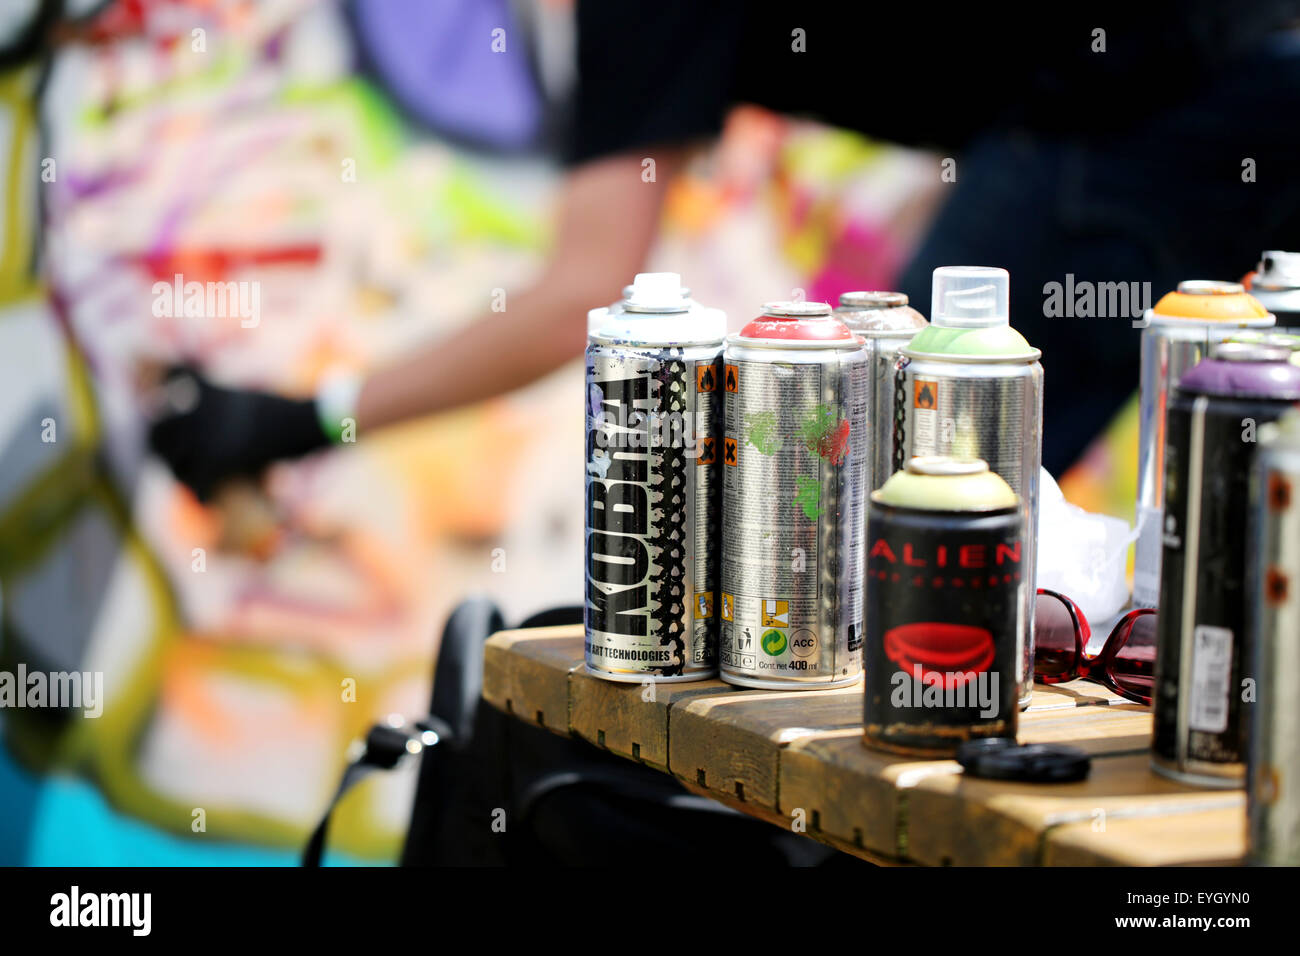 A group of used Kobra graffiti artists spray cans left on a table at the Bristol Upfest event. A blurred working Stock Photo